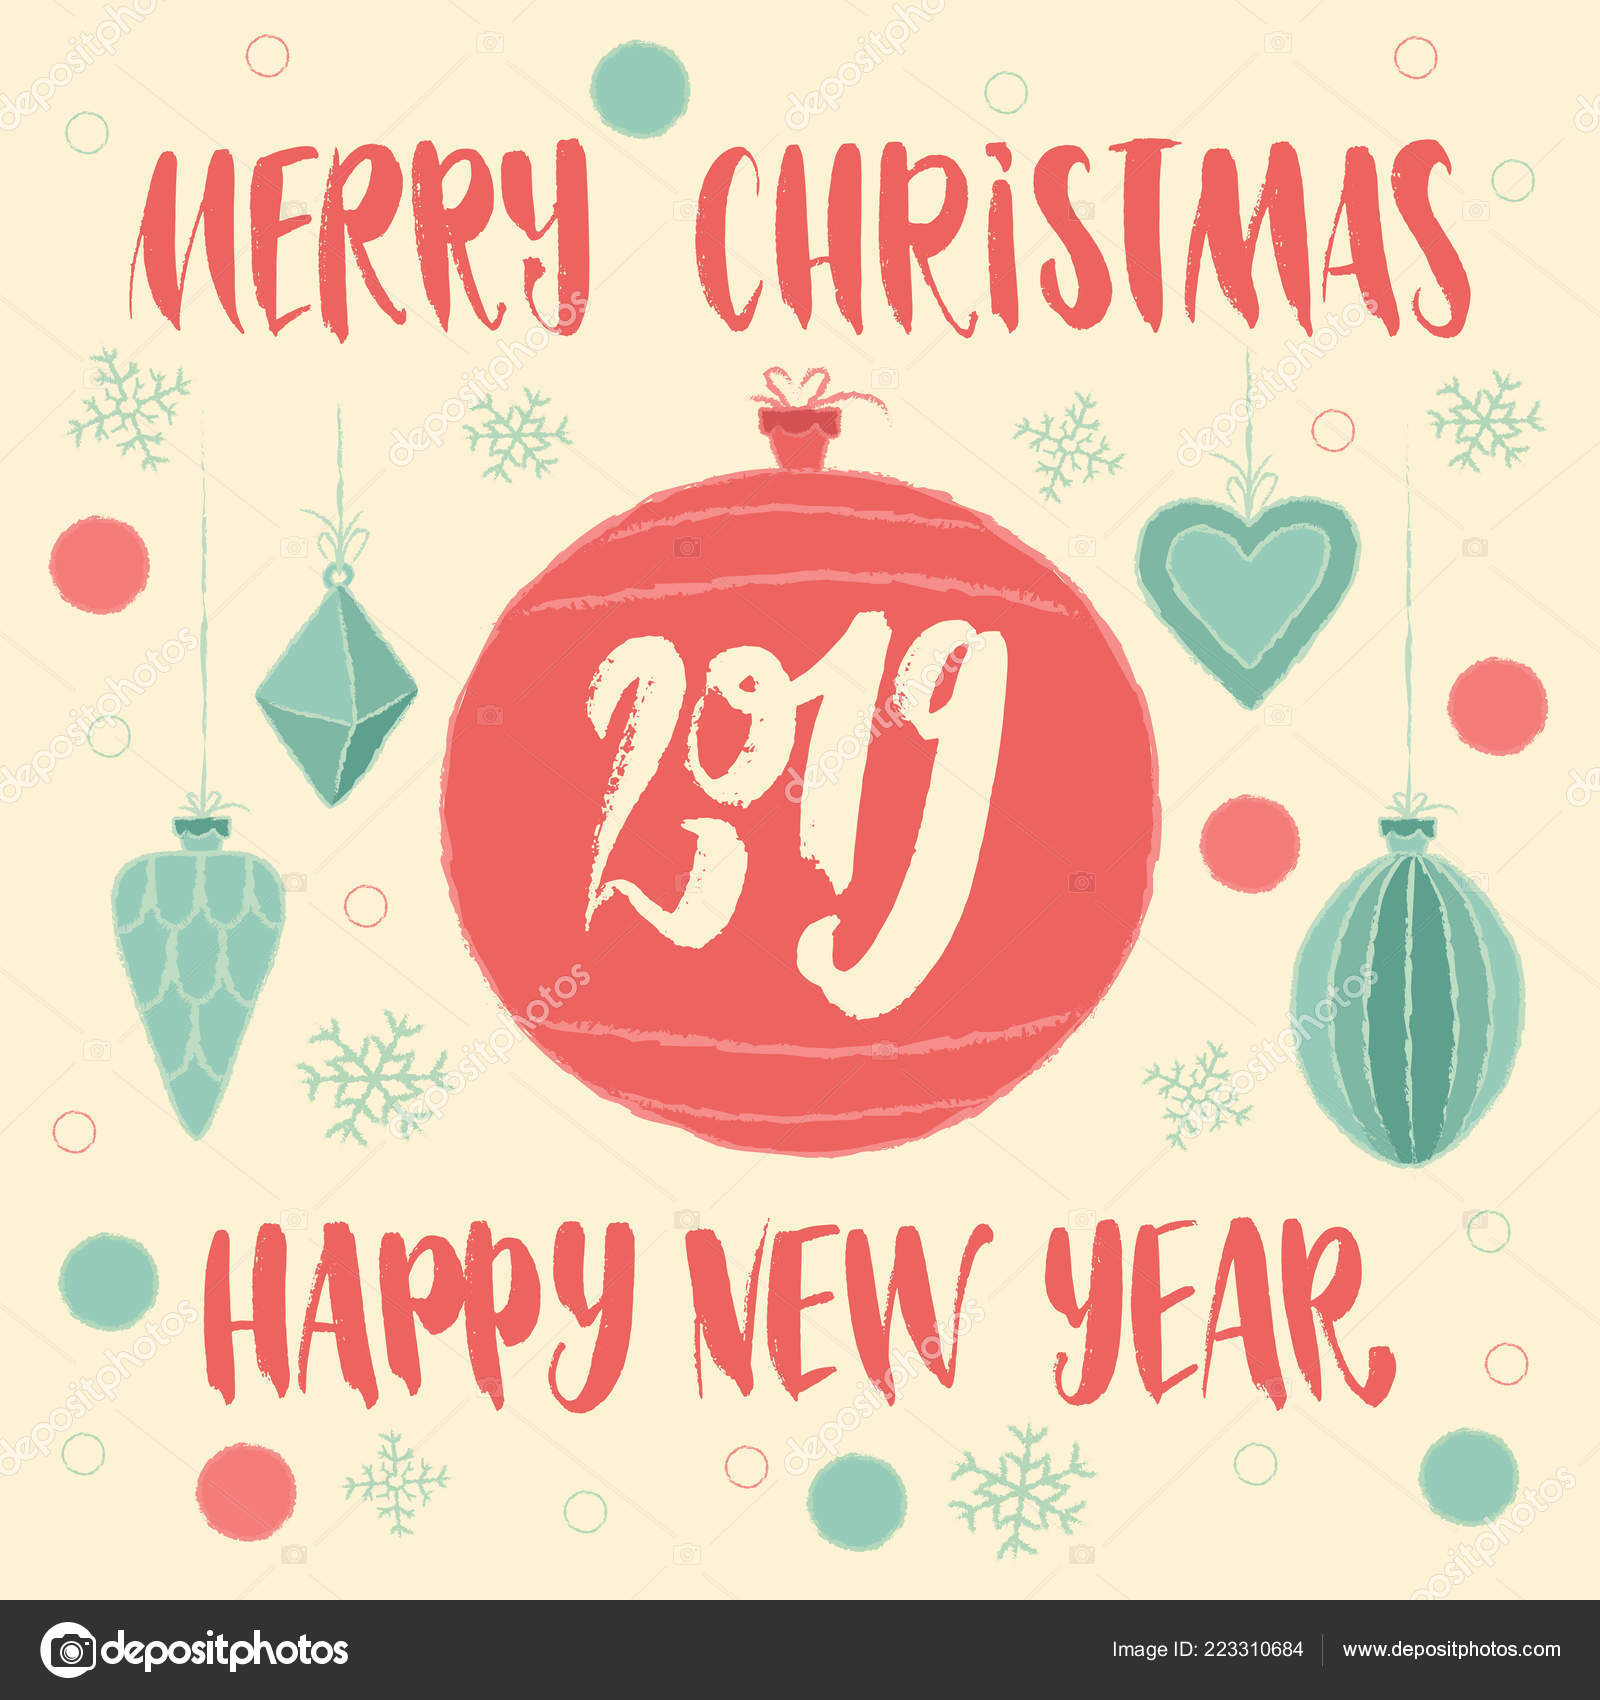 Merry Christmas Happy New Year 2019 Greeting Card